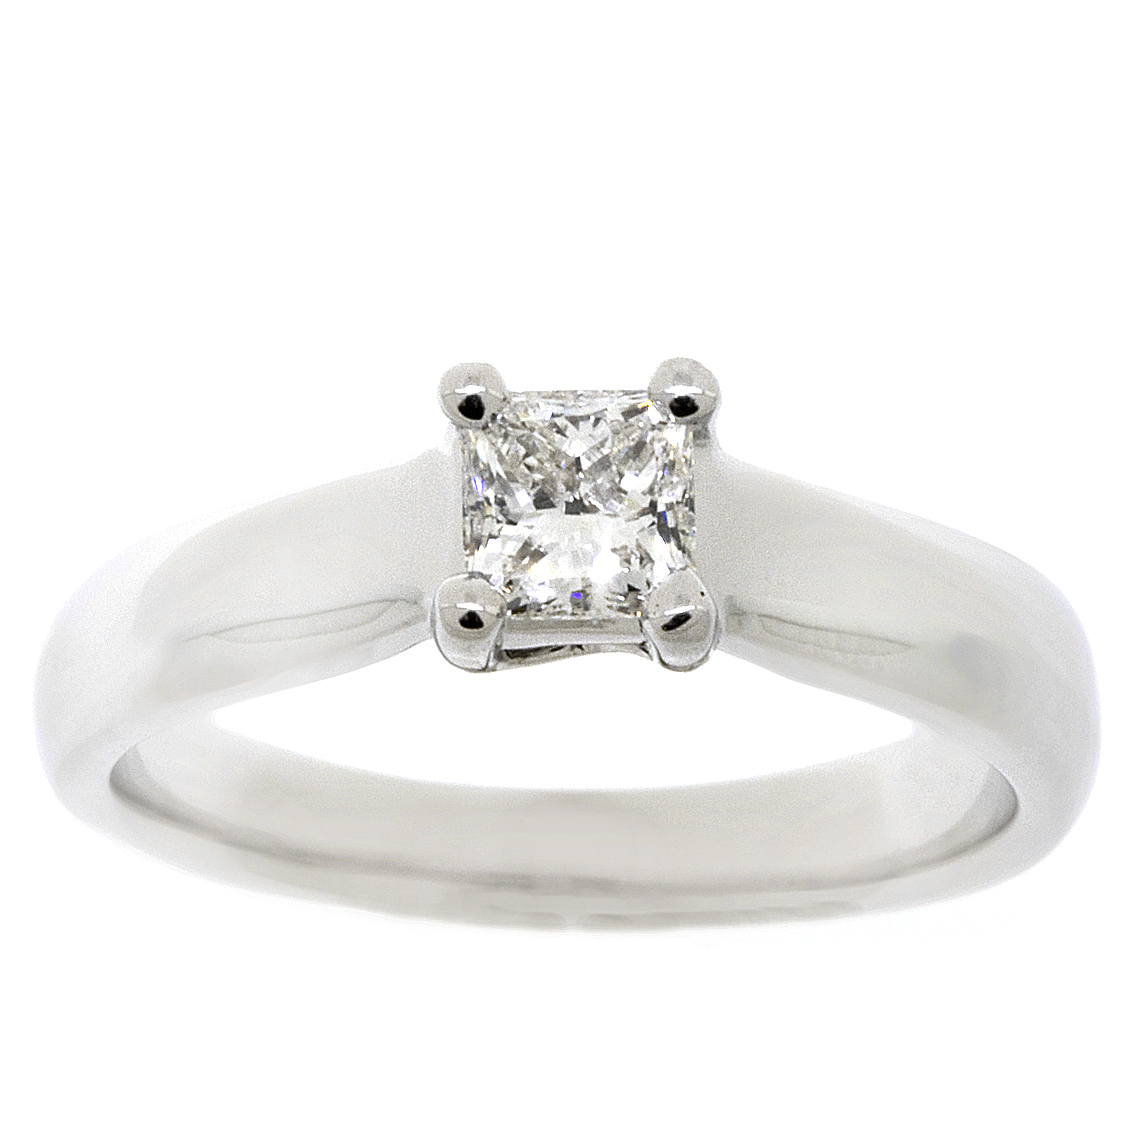 in co set beautifully versatility bands the engagement to pairing wedding eshop are solitare an gabriel bridal time and unmatched complete rings their when banners solitaire with comes array of diamond